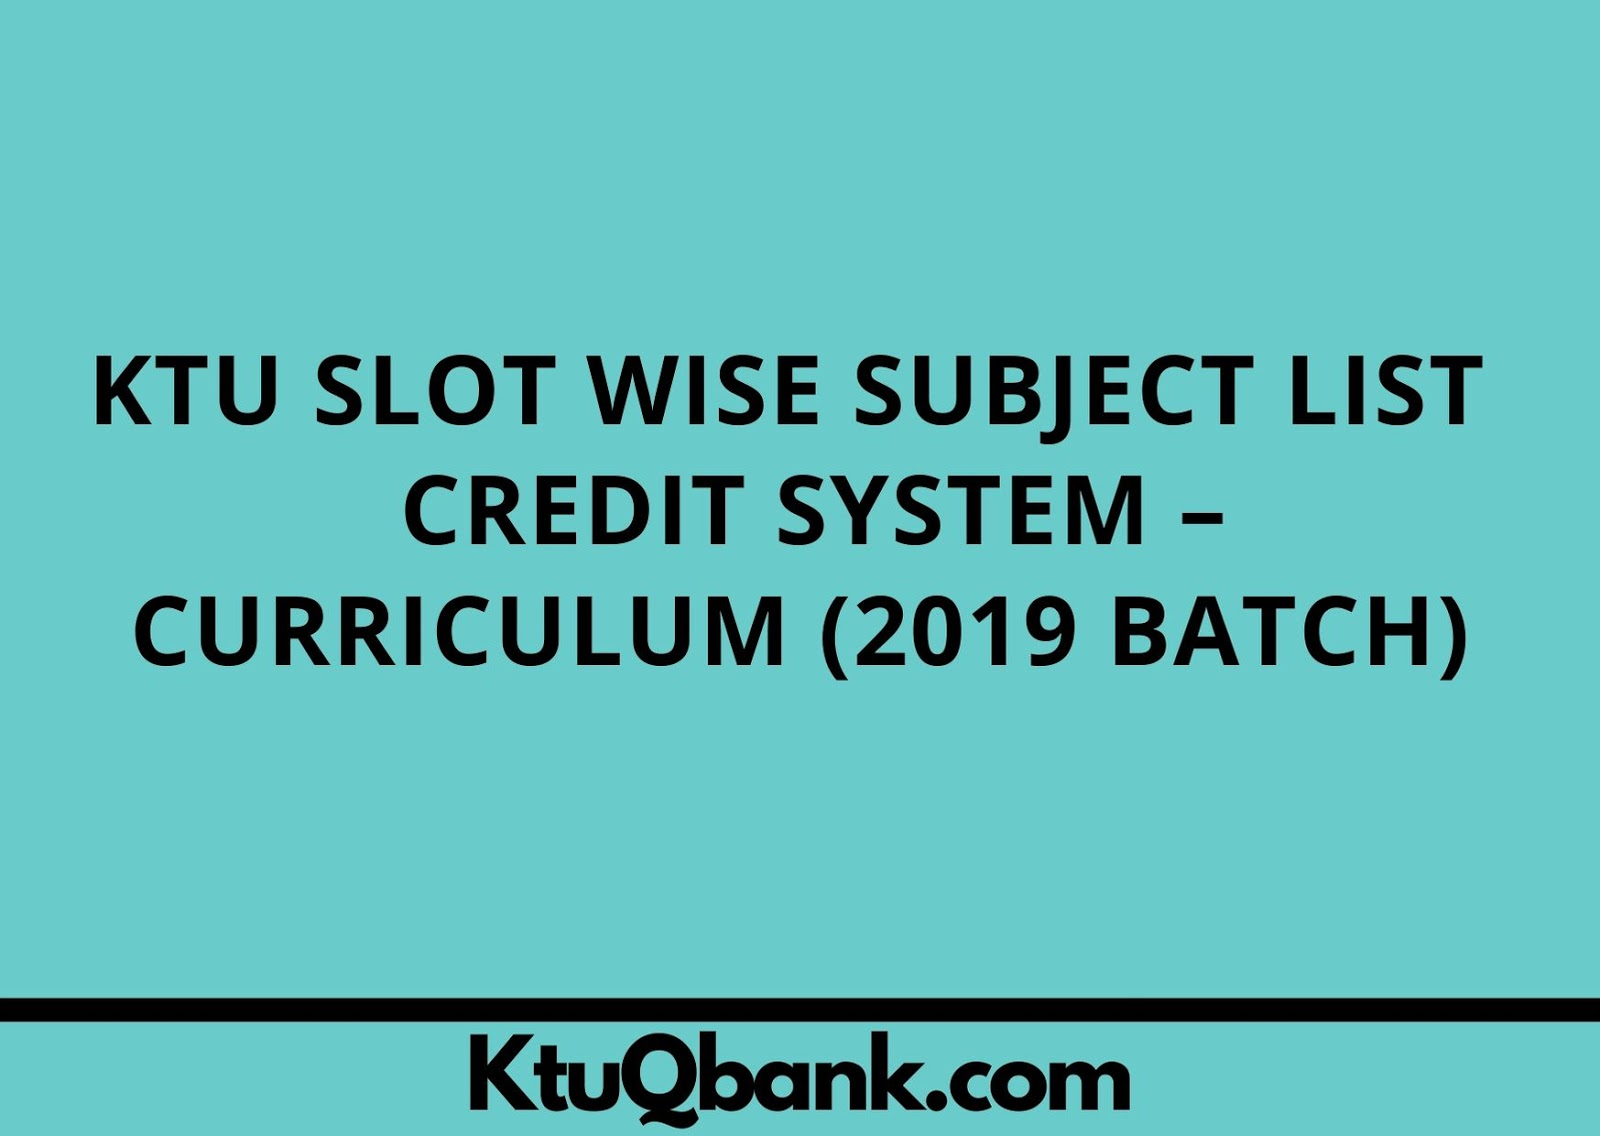 KTU Slot Wise Subject List – Credit System – Curriculum (2019 Batch)